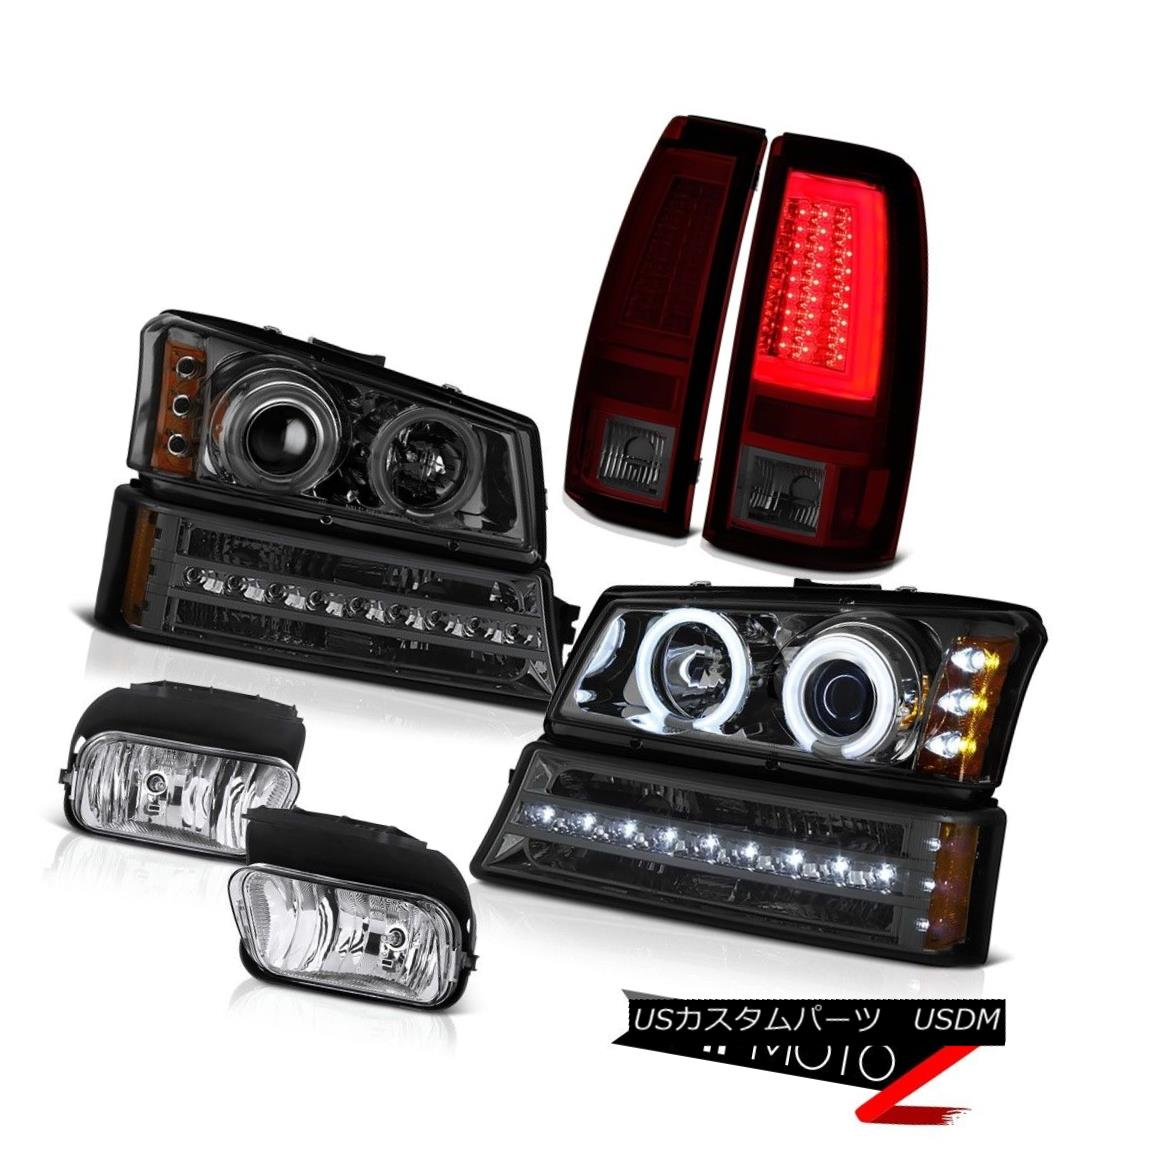 ヘッドライト 03-06 Silverado Tail Lights Euro Chrome Foglamps Smokey Turn Signal Headlights 03-06 SilveradoテールライトEuro Chrome Fogランプスモークターンシグナルヘッドライト